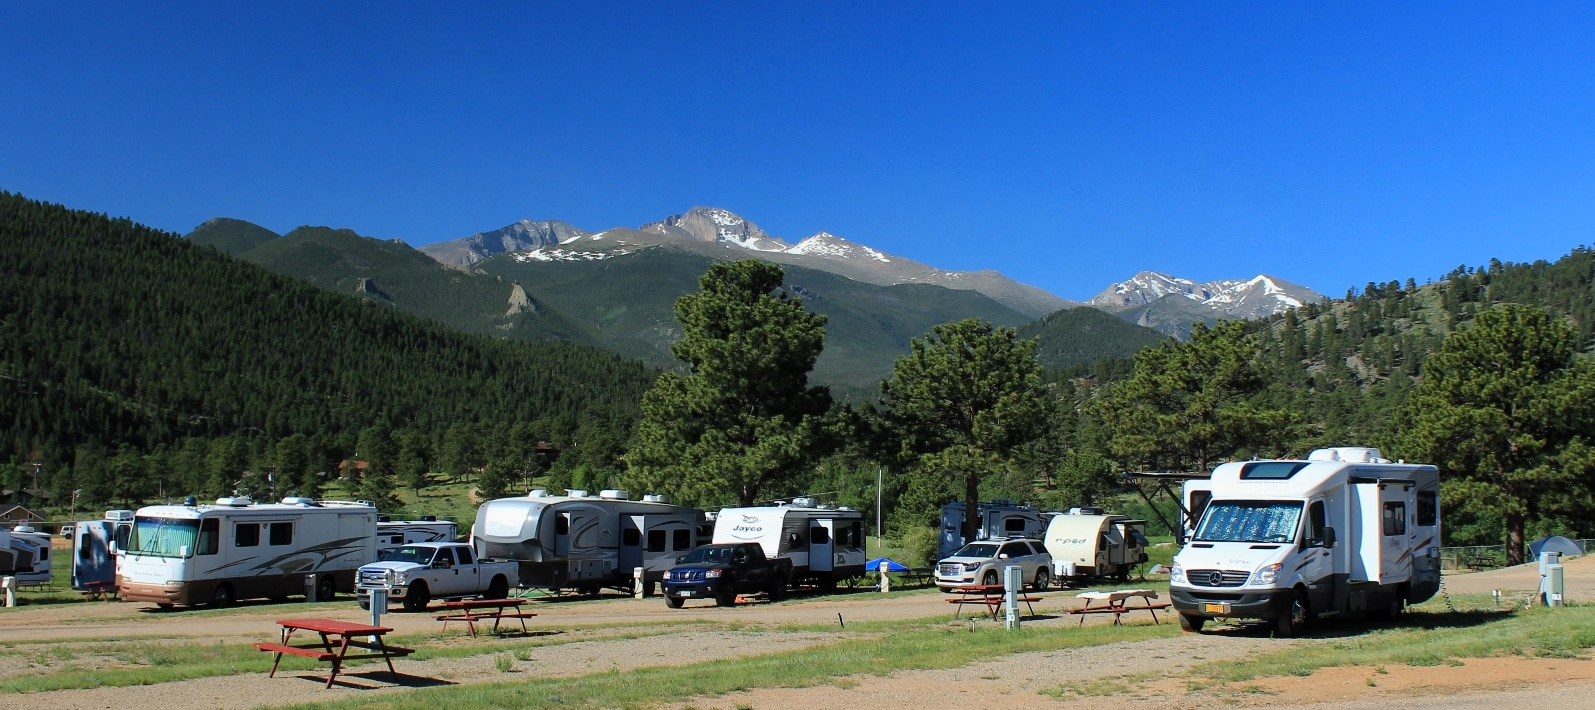 RV Park in Rocky Mountains